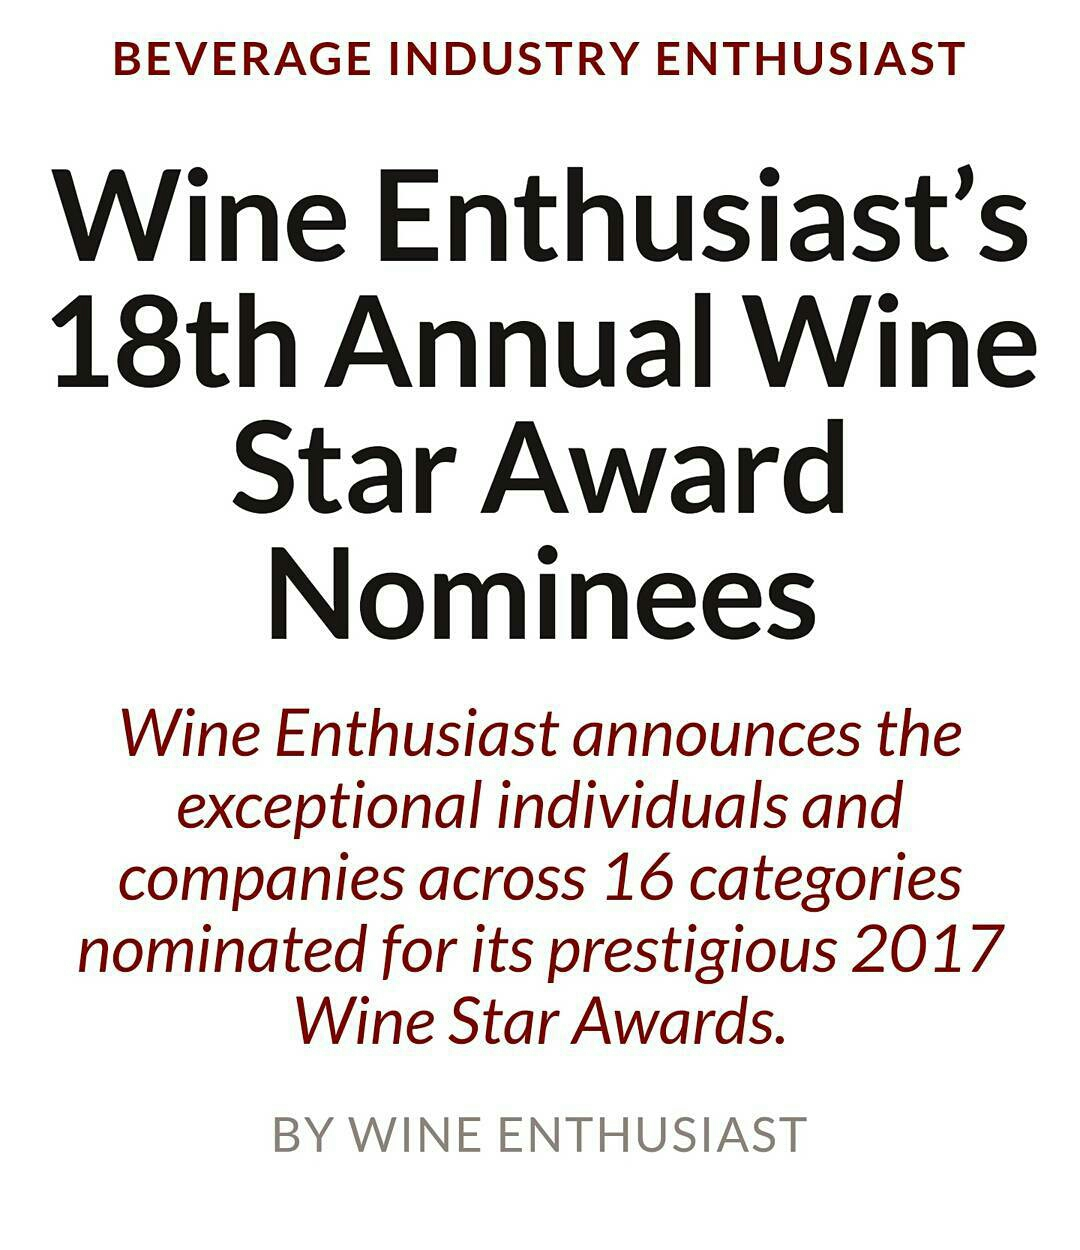 wine enthusiast.jpg